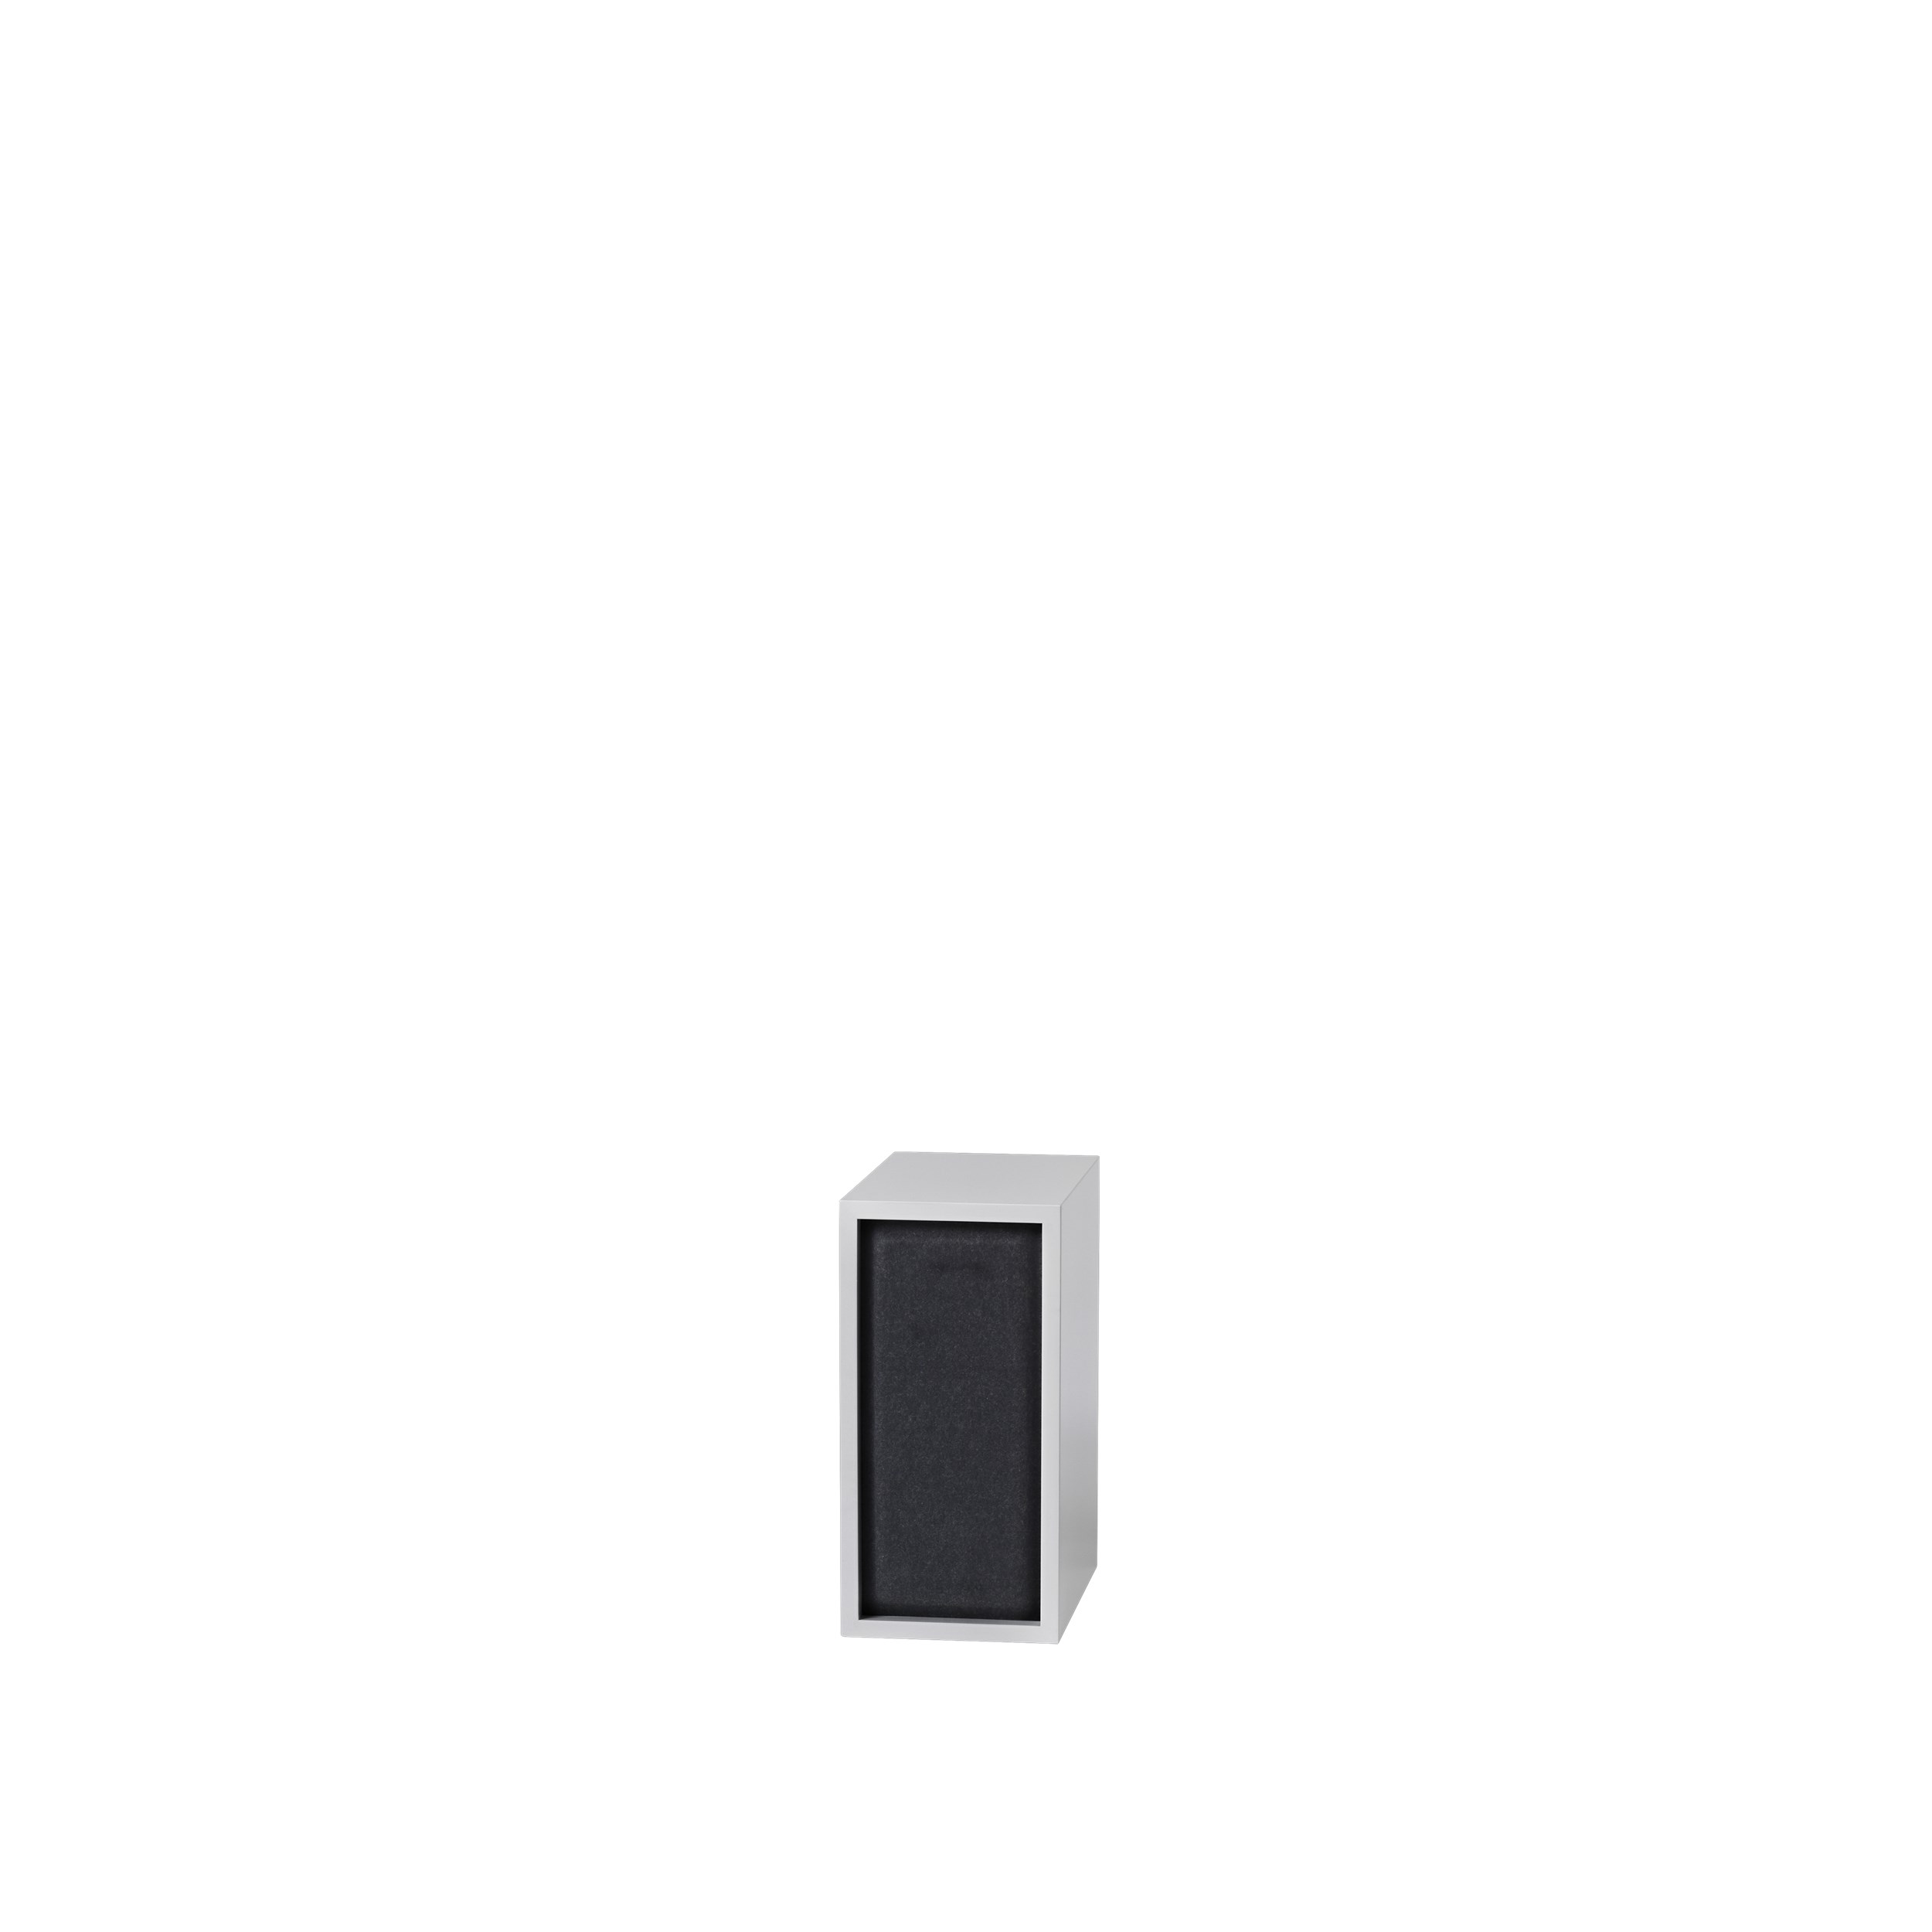 Stacked 2.0 acoustic panel small black